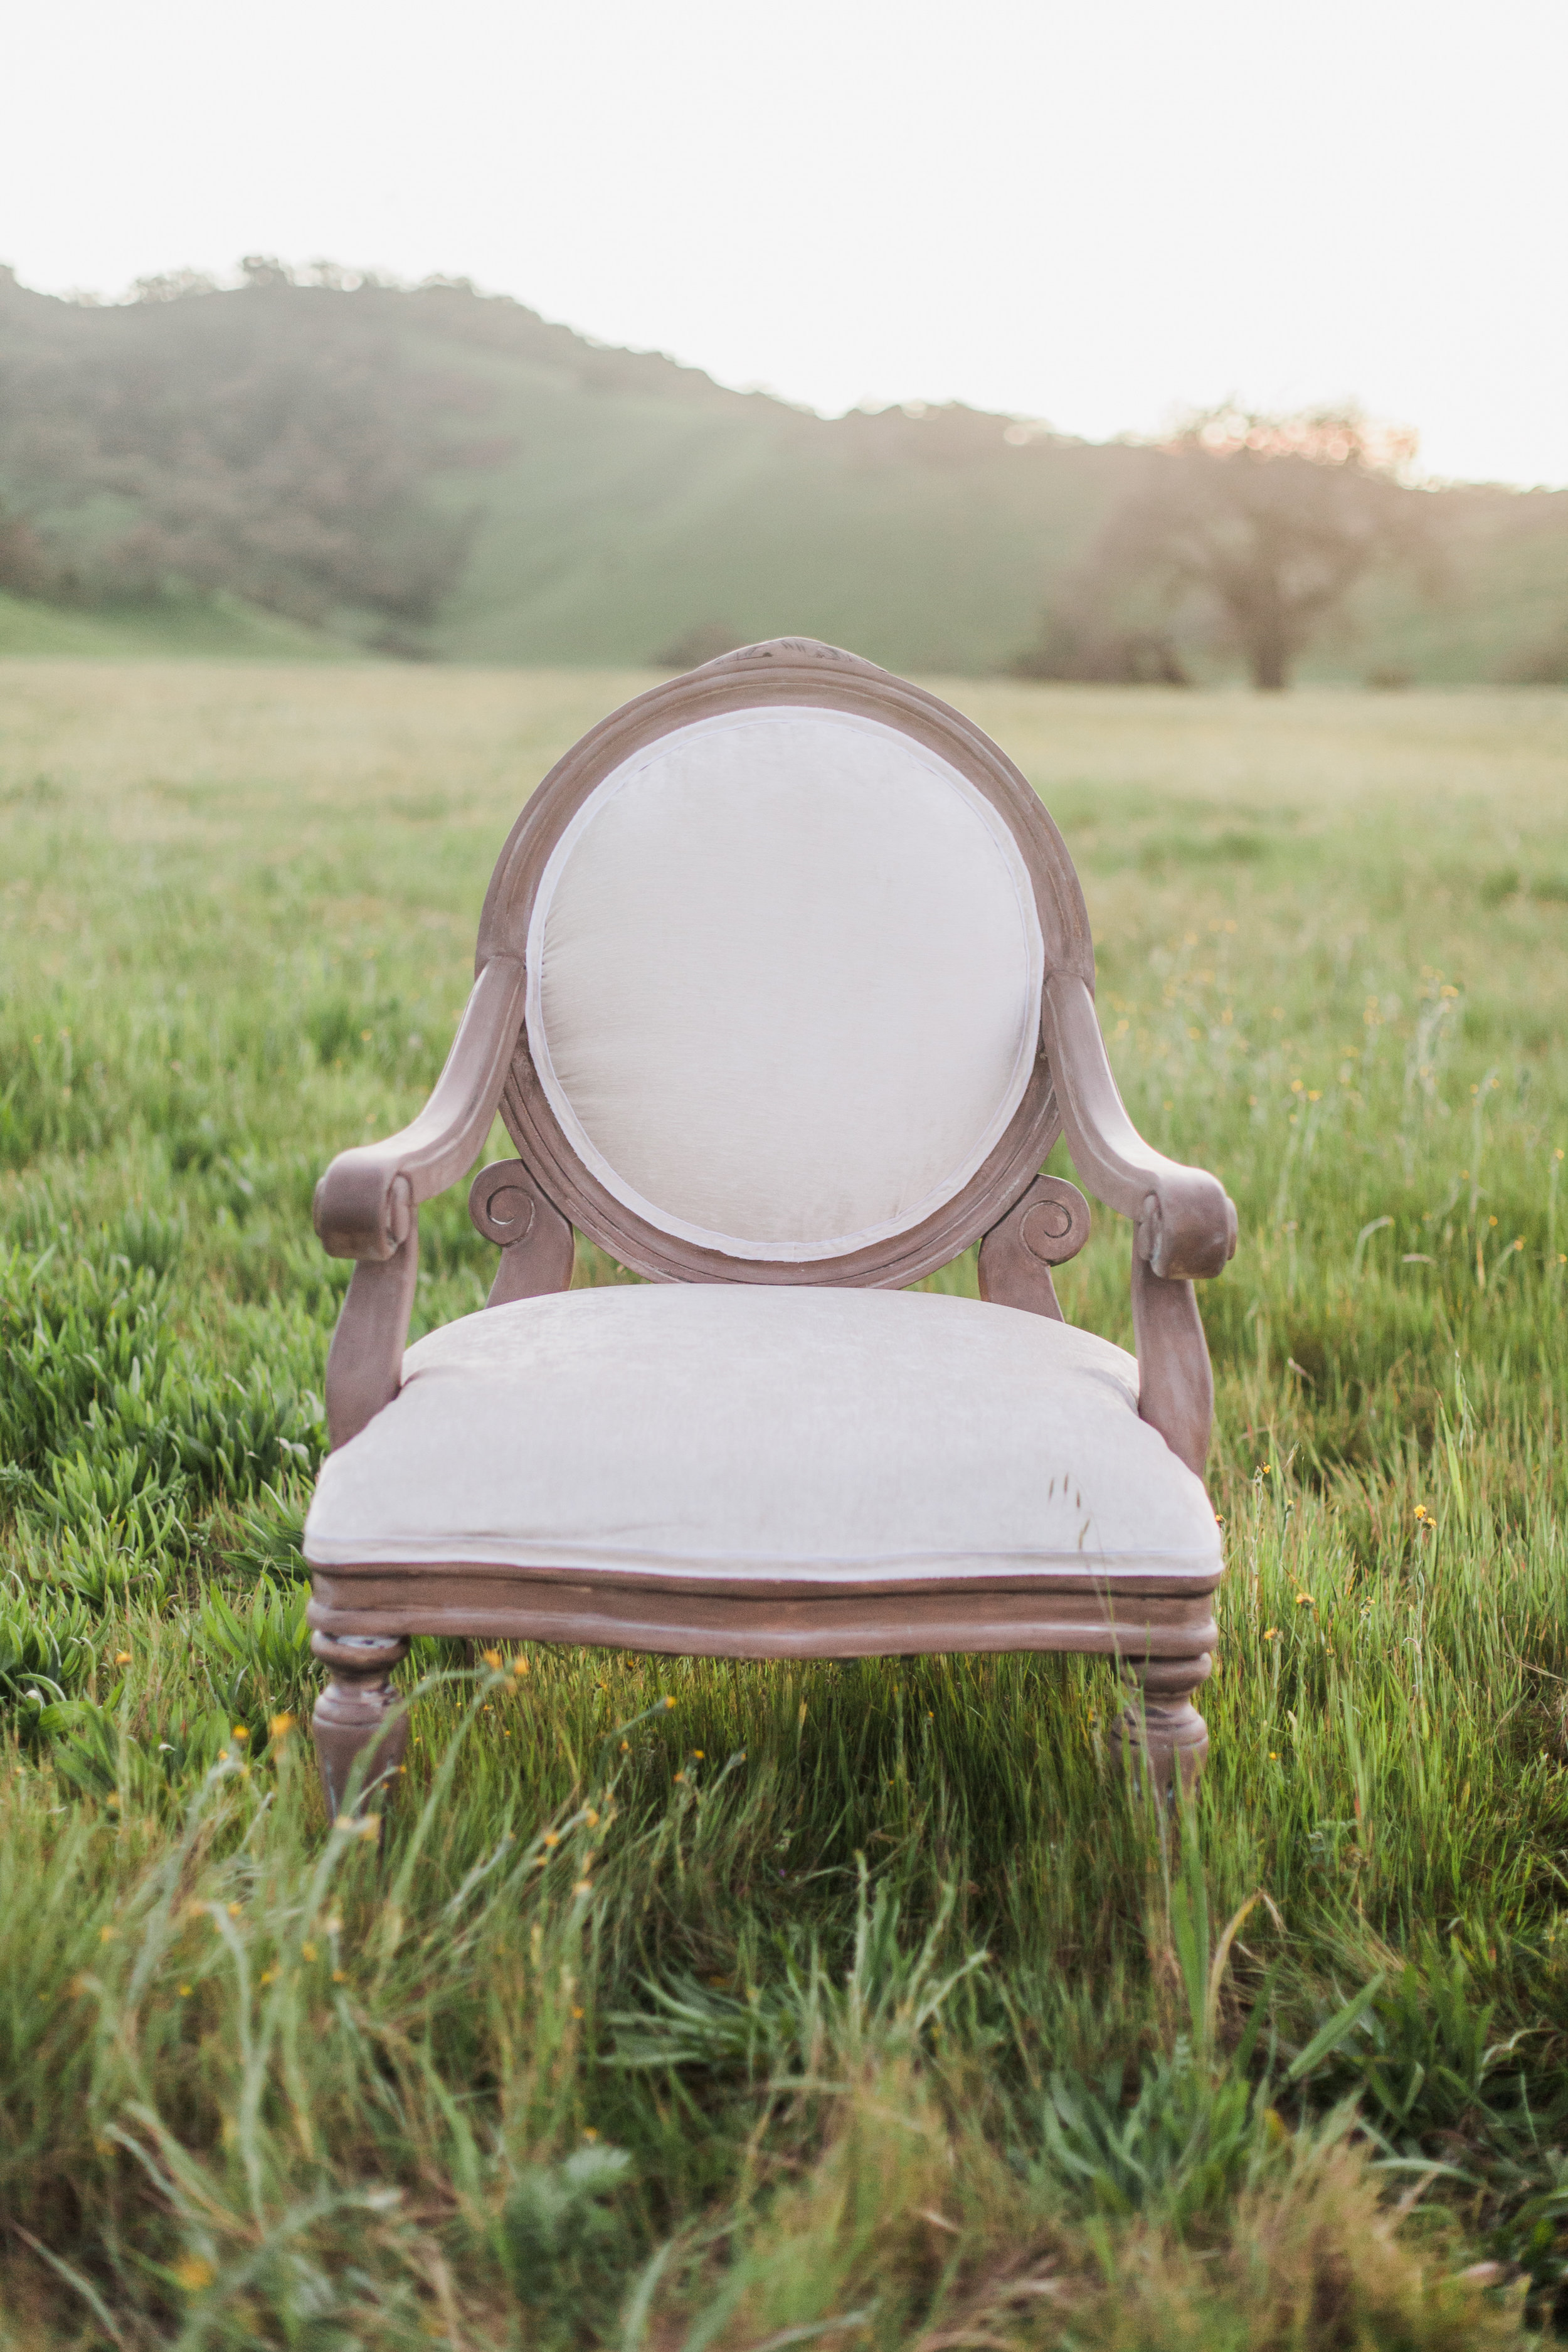 Vintage chair in a grass field during maternity session in San Jose, California.